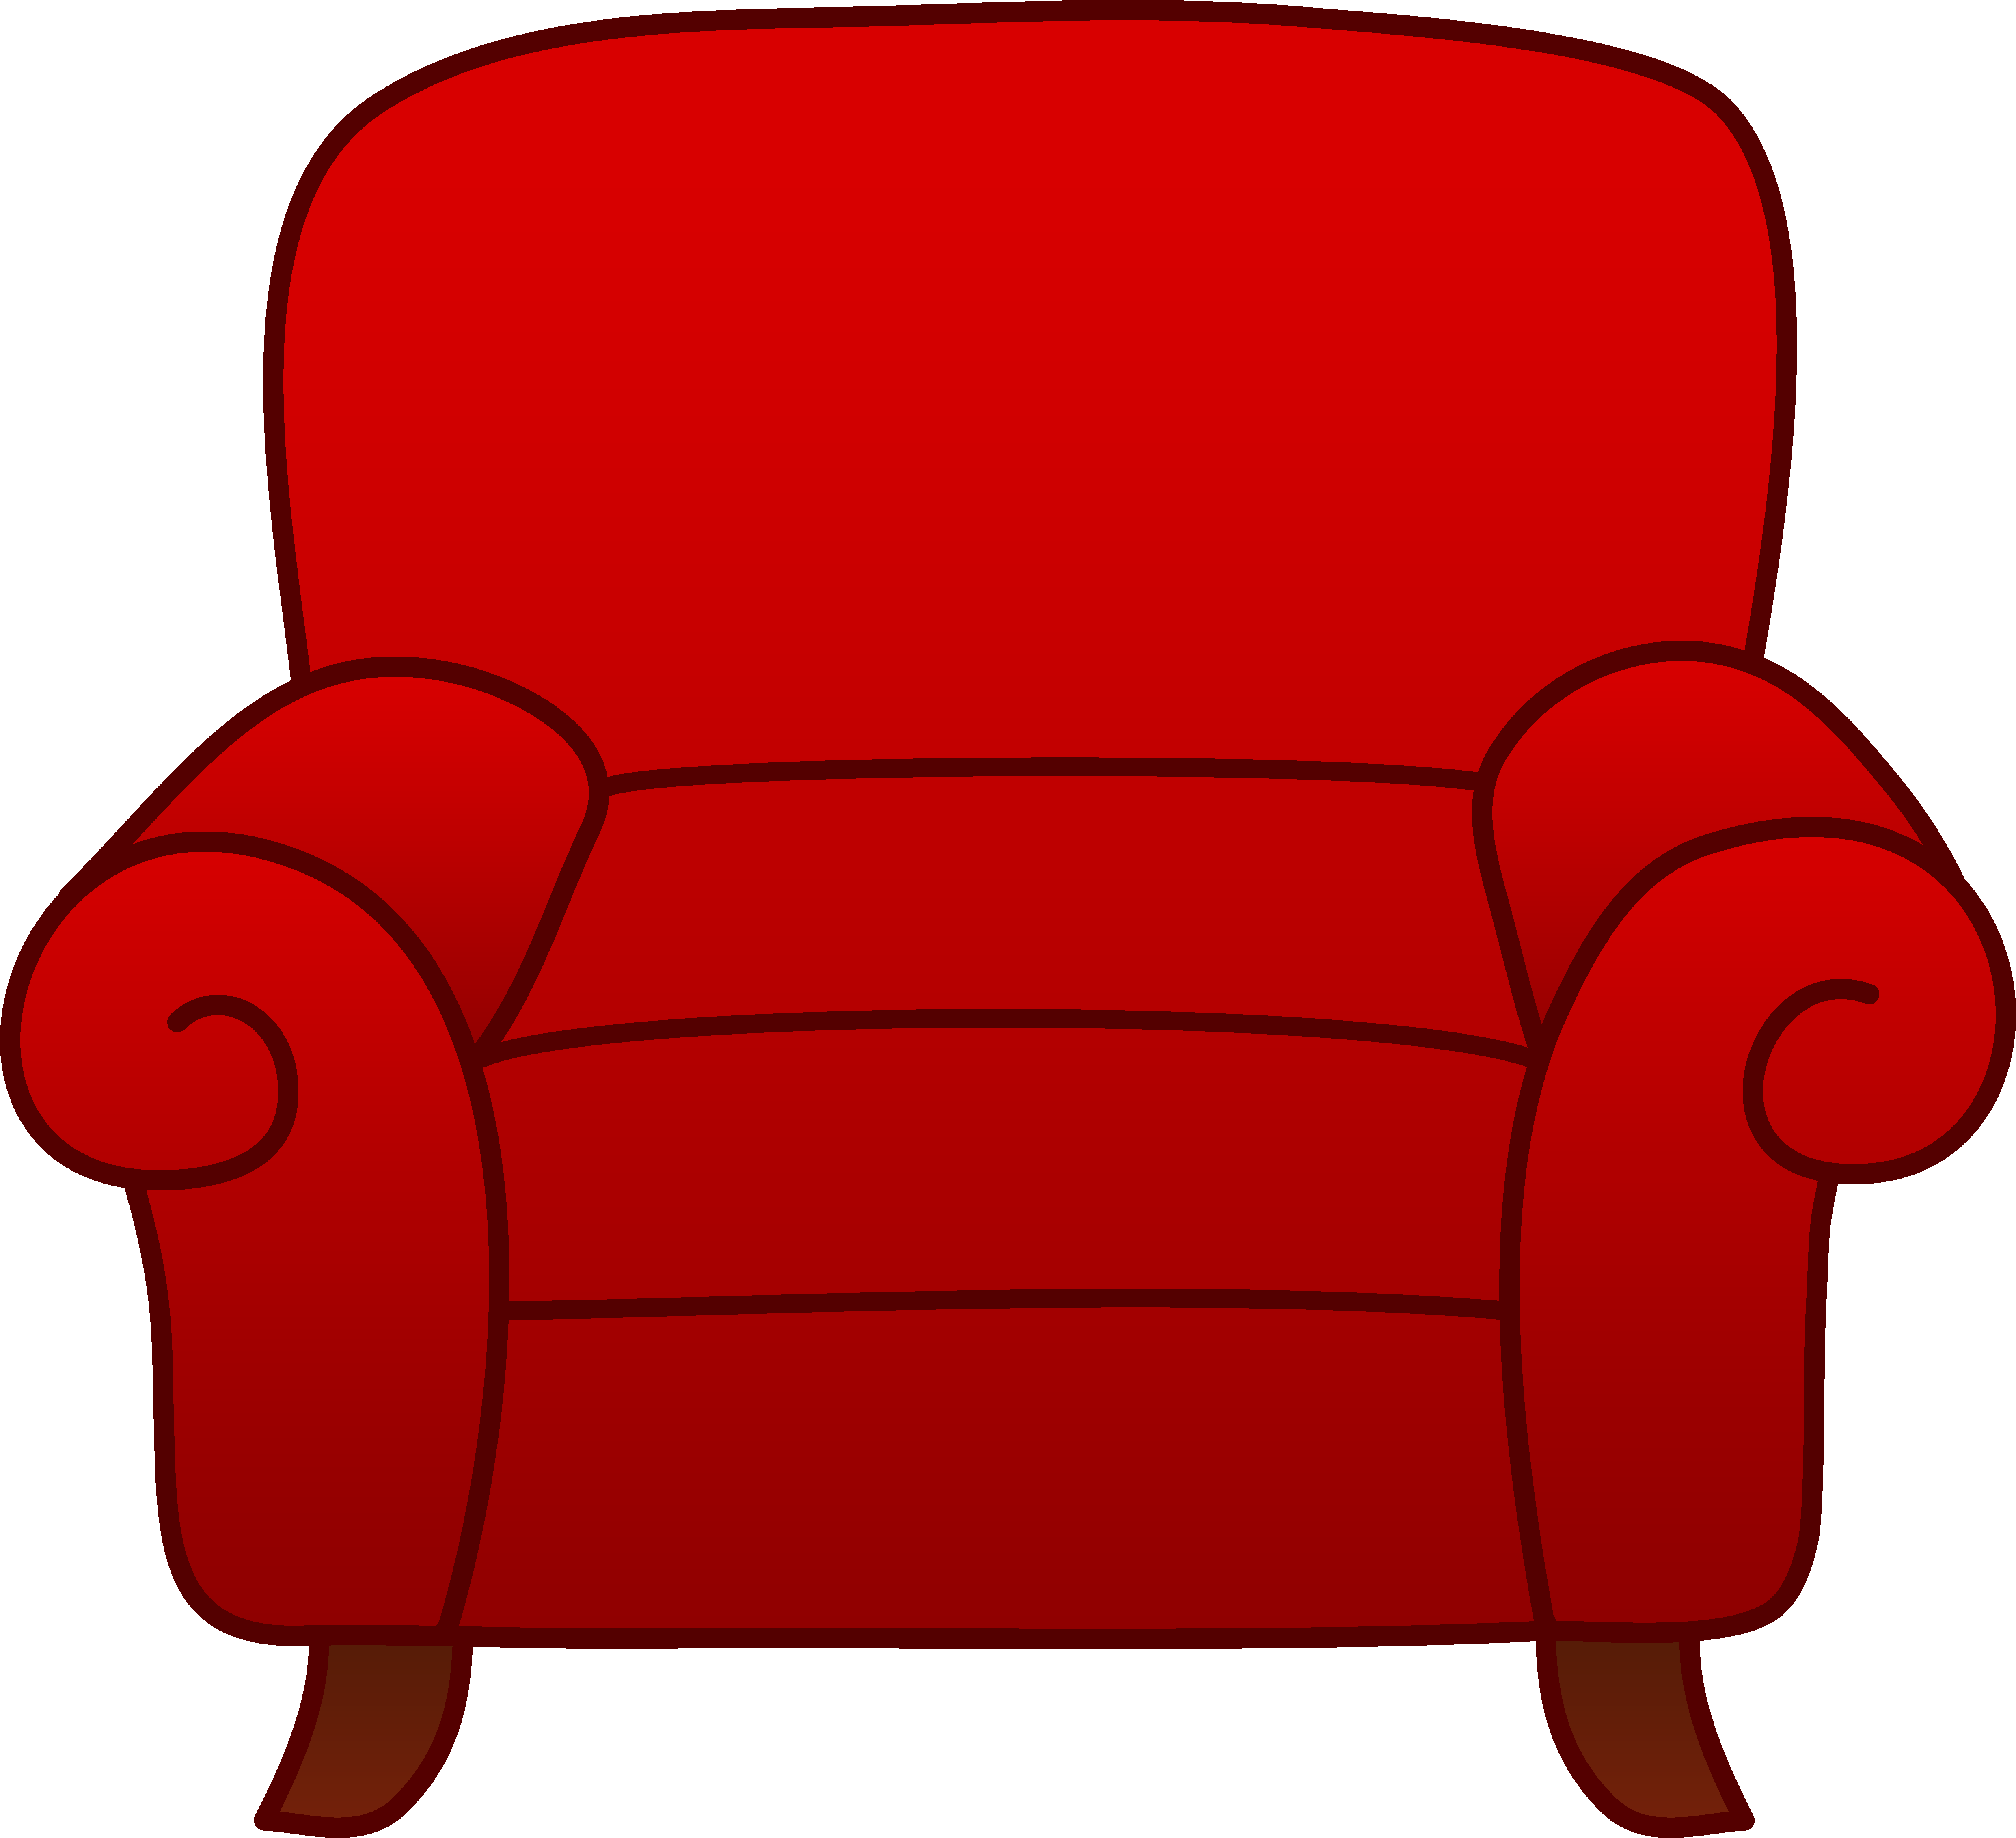 Chair at getdrawings com. Psychology clipart couch